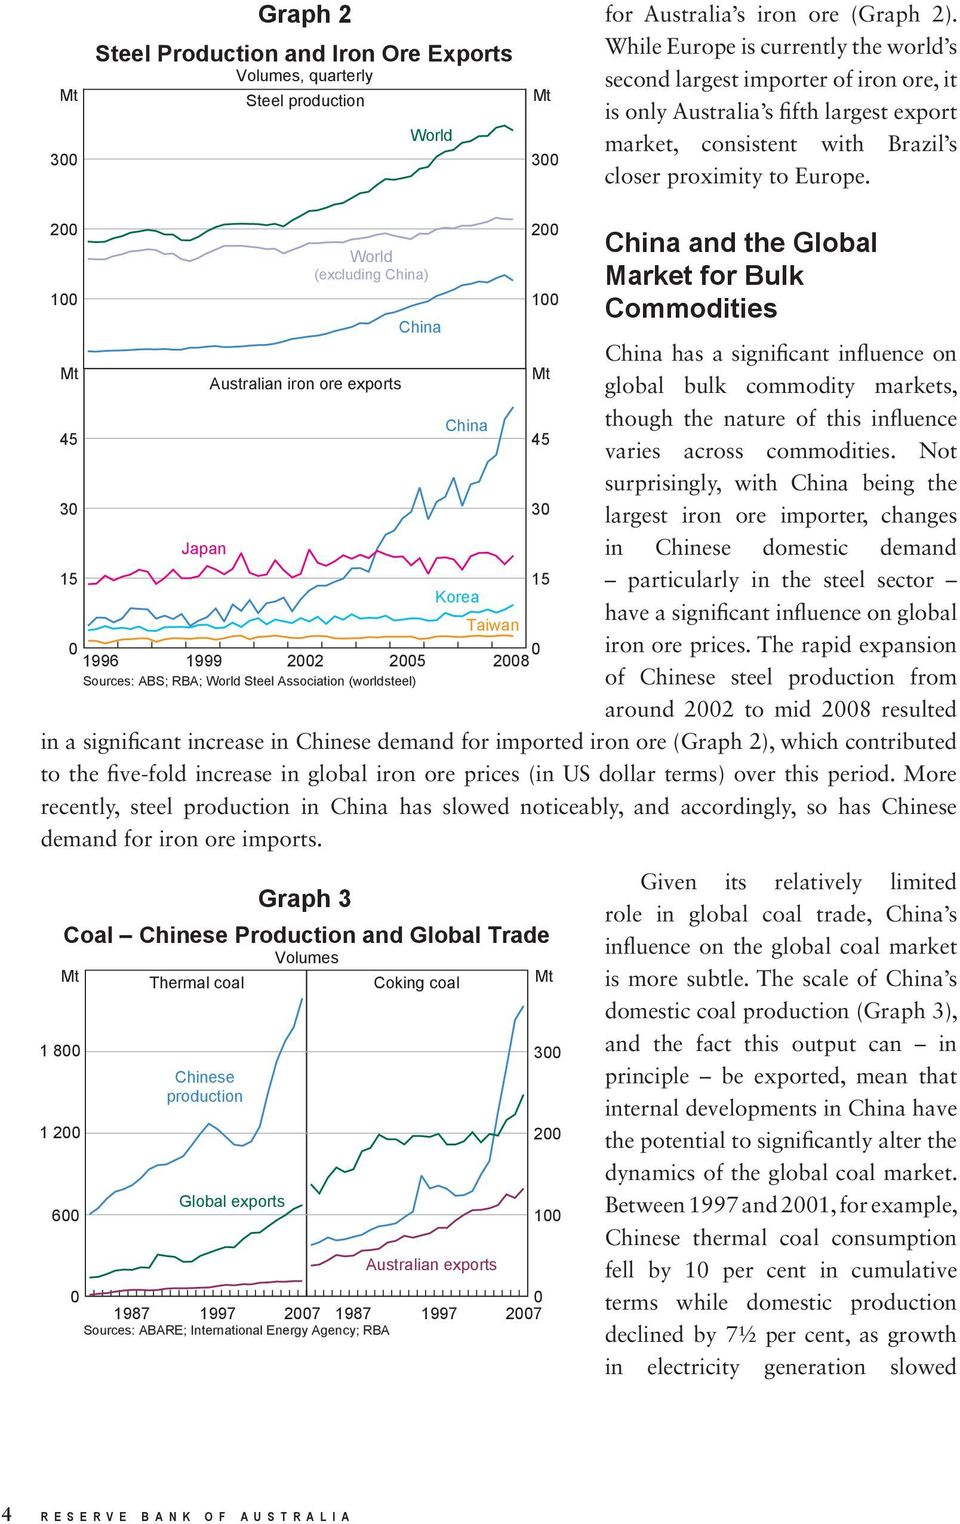 2 1 China and the Global Market for Bulk Commodities Australian iron ore exports China has a significant influence on global bulk commodity markets, 5 China though the nature of this influence 5